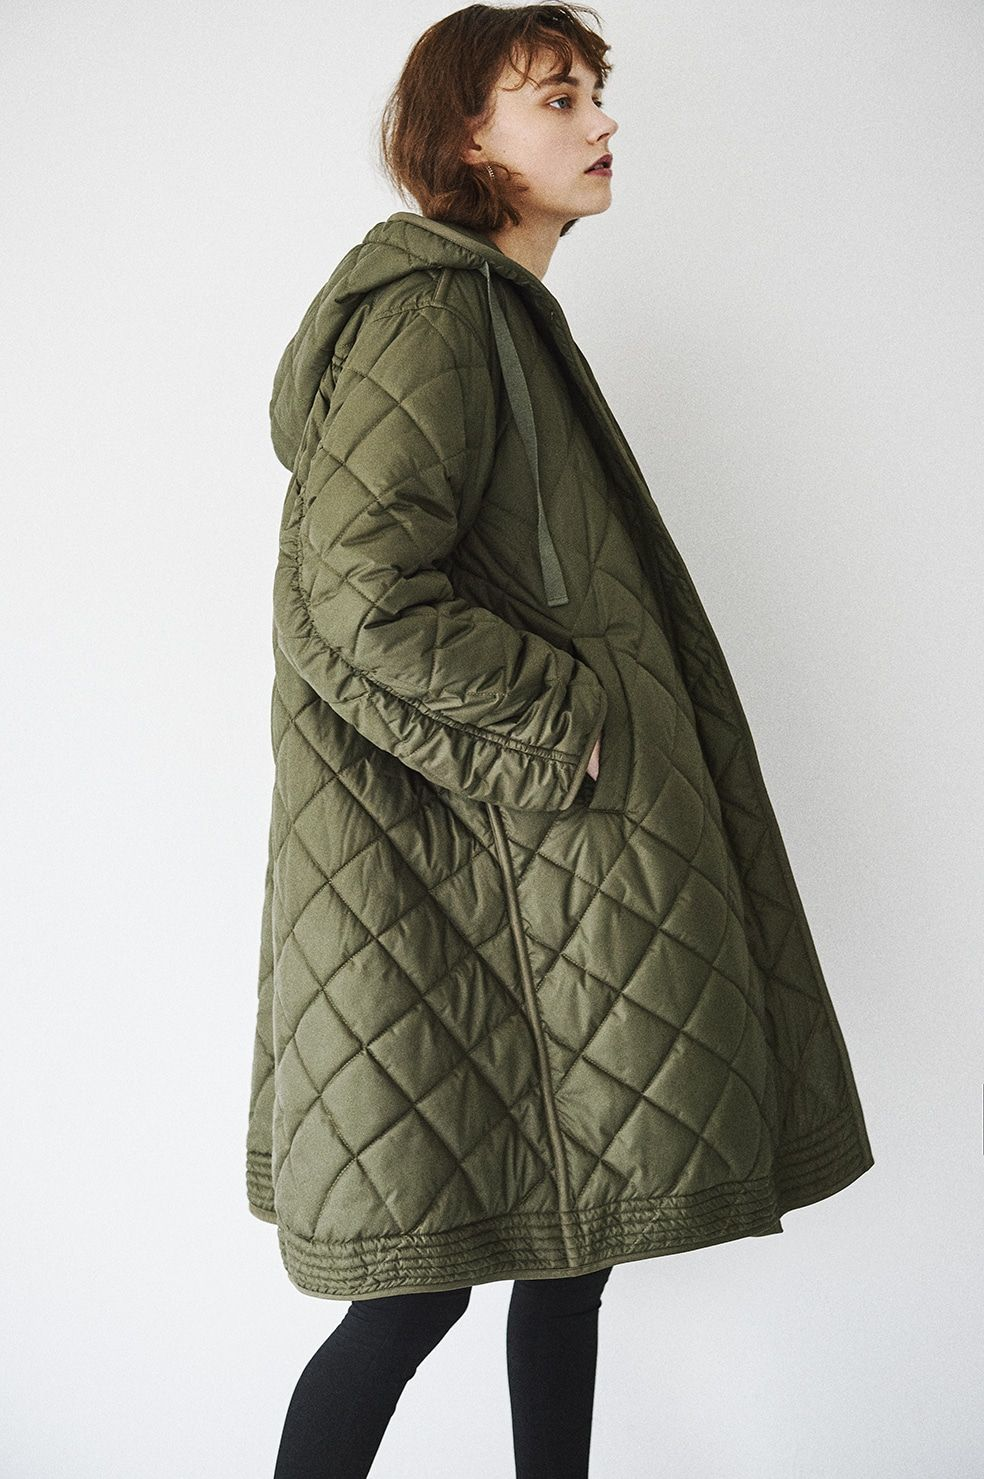 QUILTING HOODIE TENT LINE COAT|OUTER(アウター)|CLANE OFFICIAL ONLINE STORE 77627dfc112